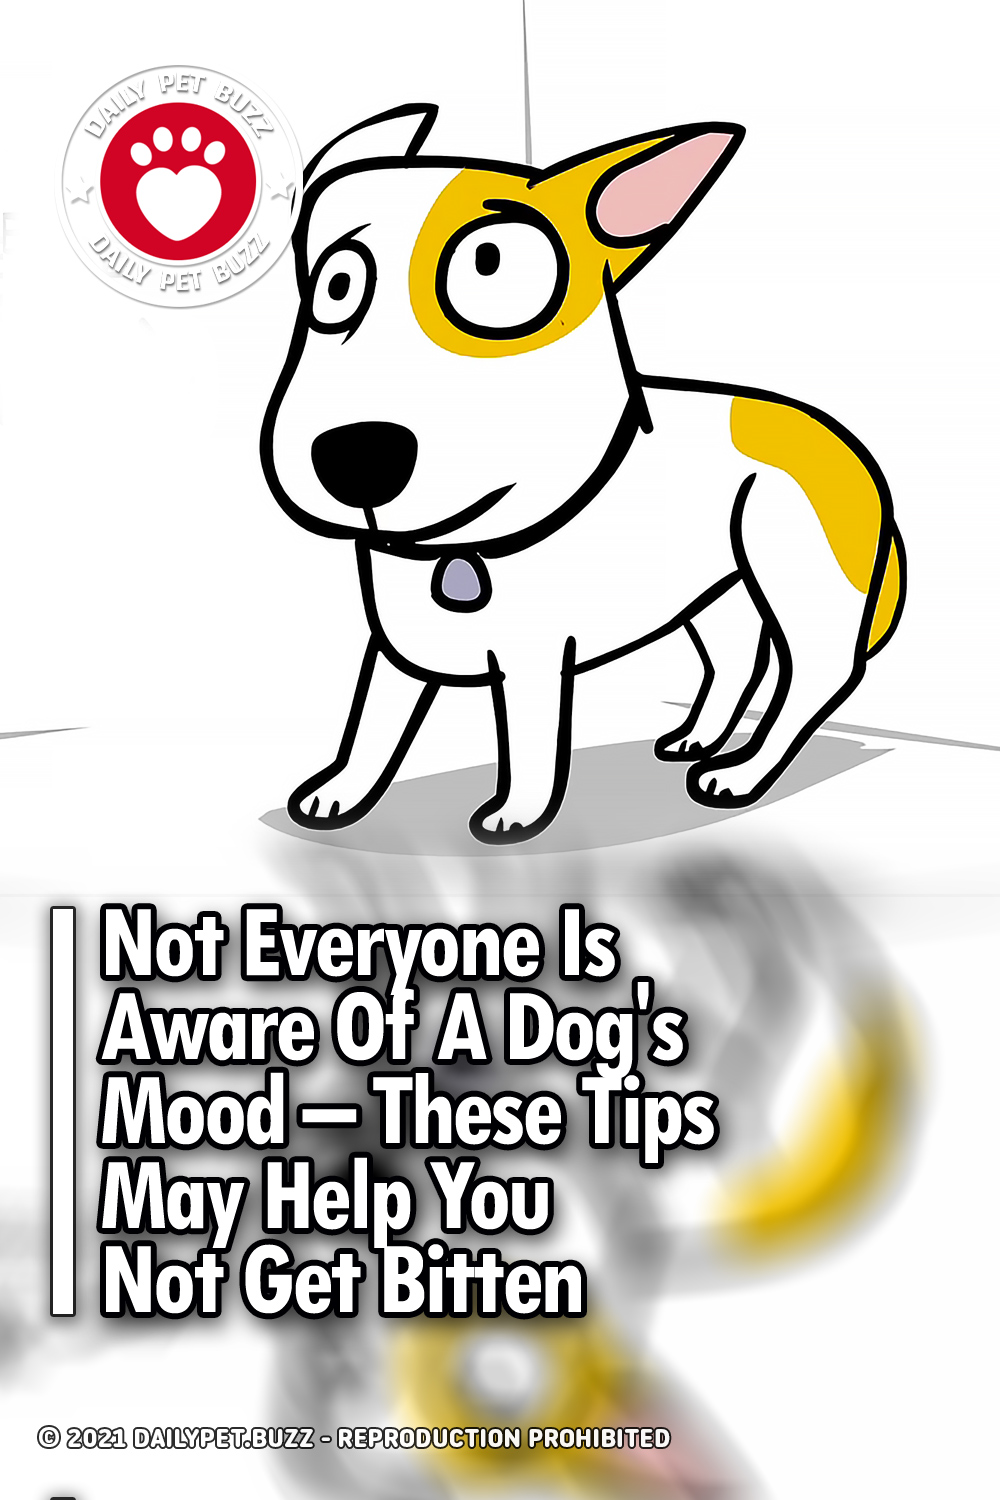 Not Everyone Is Aware Of A Dog\'s Mood – These Tips May Help You Not Get Bitten